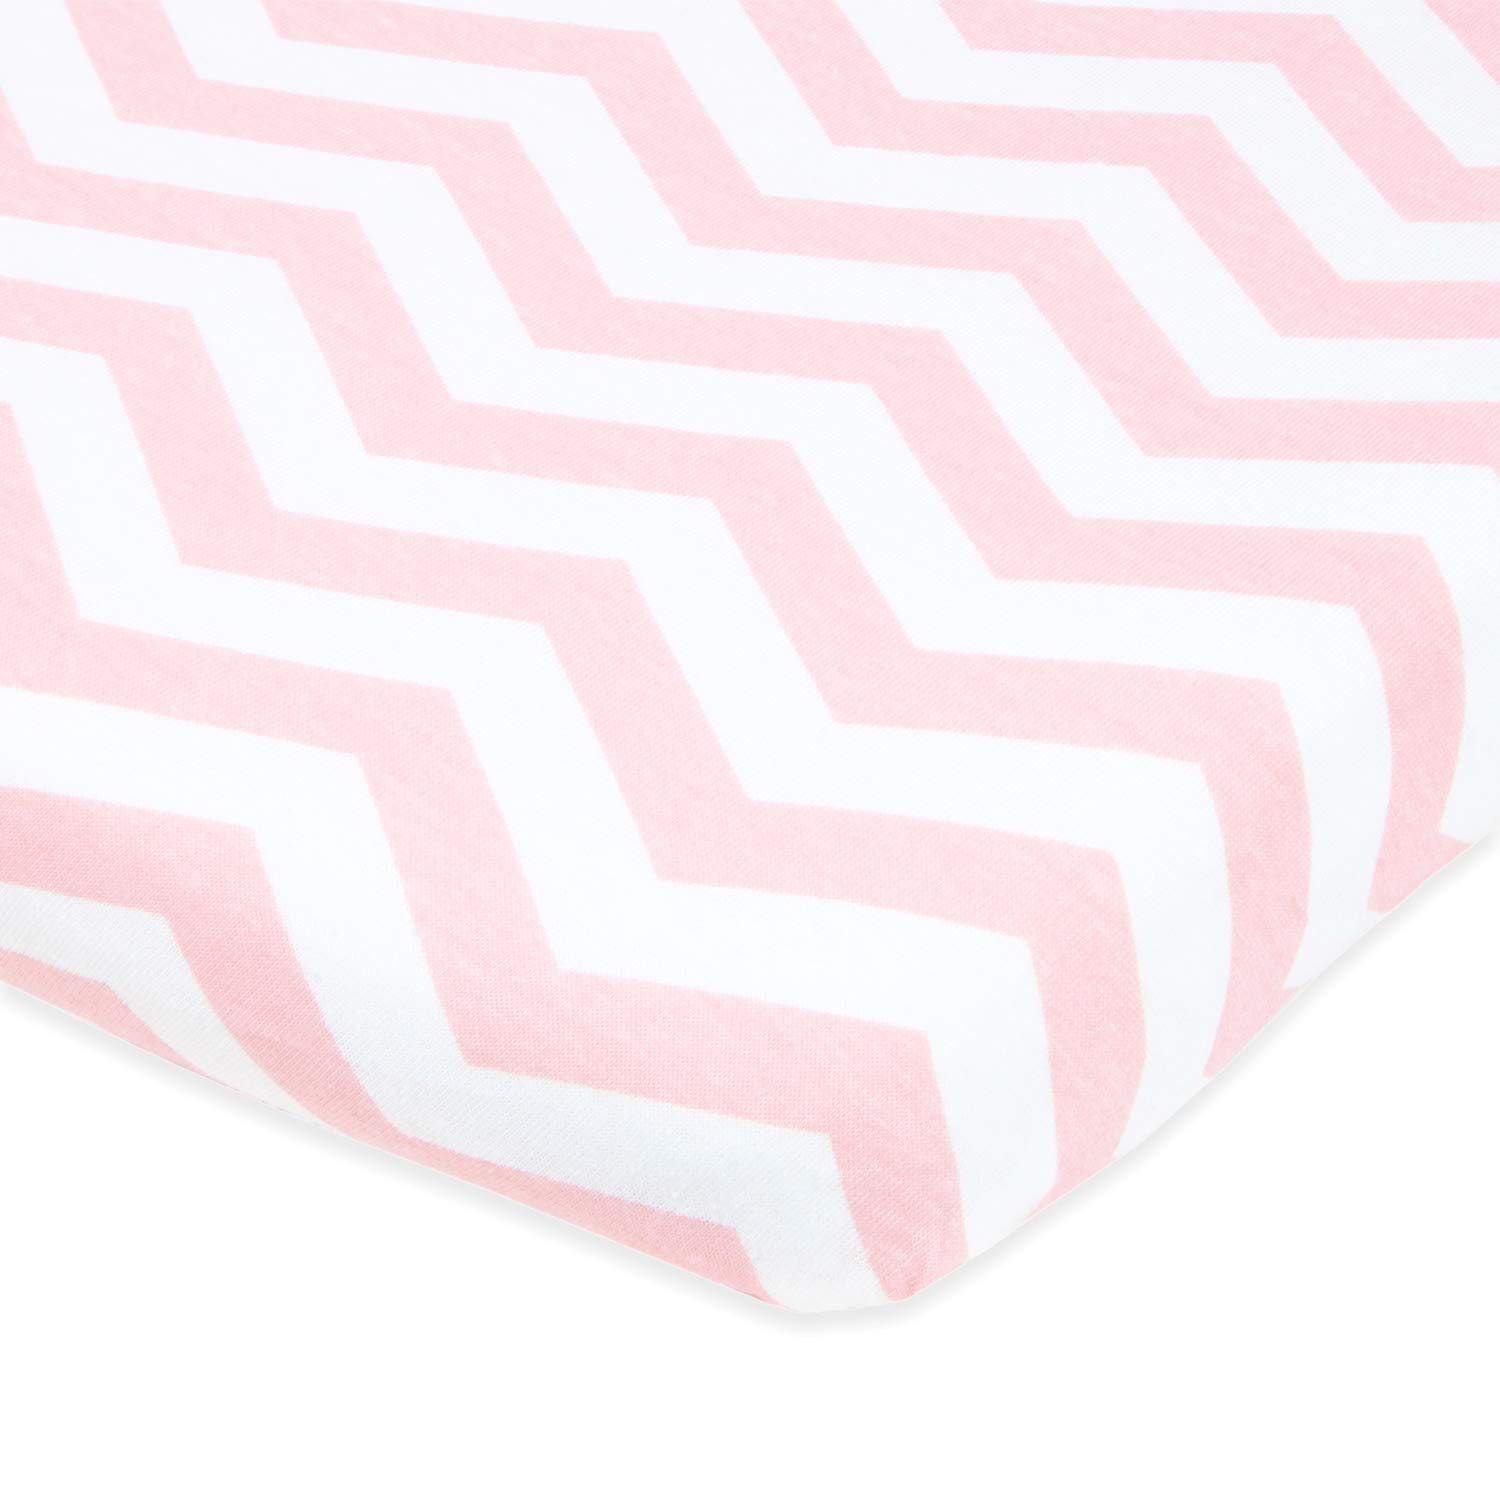 Cuddly Cubs Pack n Play Sheets | 2 Pack Playard Sheet for Baby Girl and Boy | 100% Jersey Cotton Unisex Mini Portable Crib Sheets | Bows and Chevron in Grey and Pink | Fits Graco, Joovy & Others by Cuddly Cubs (Image #2)